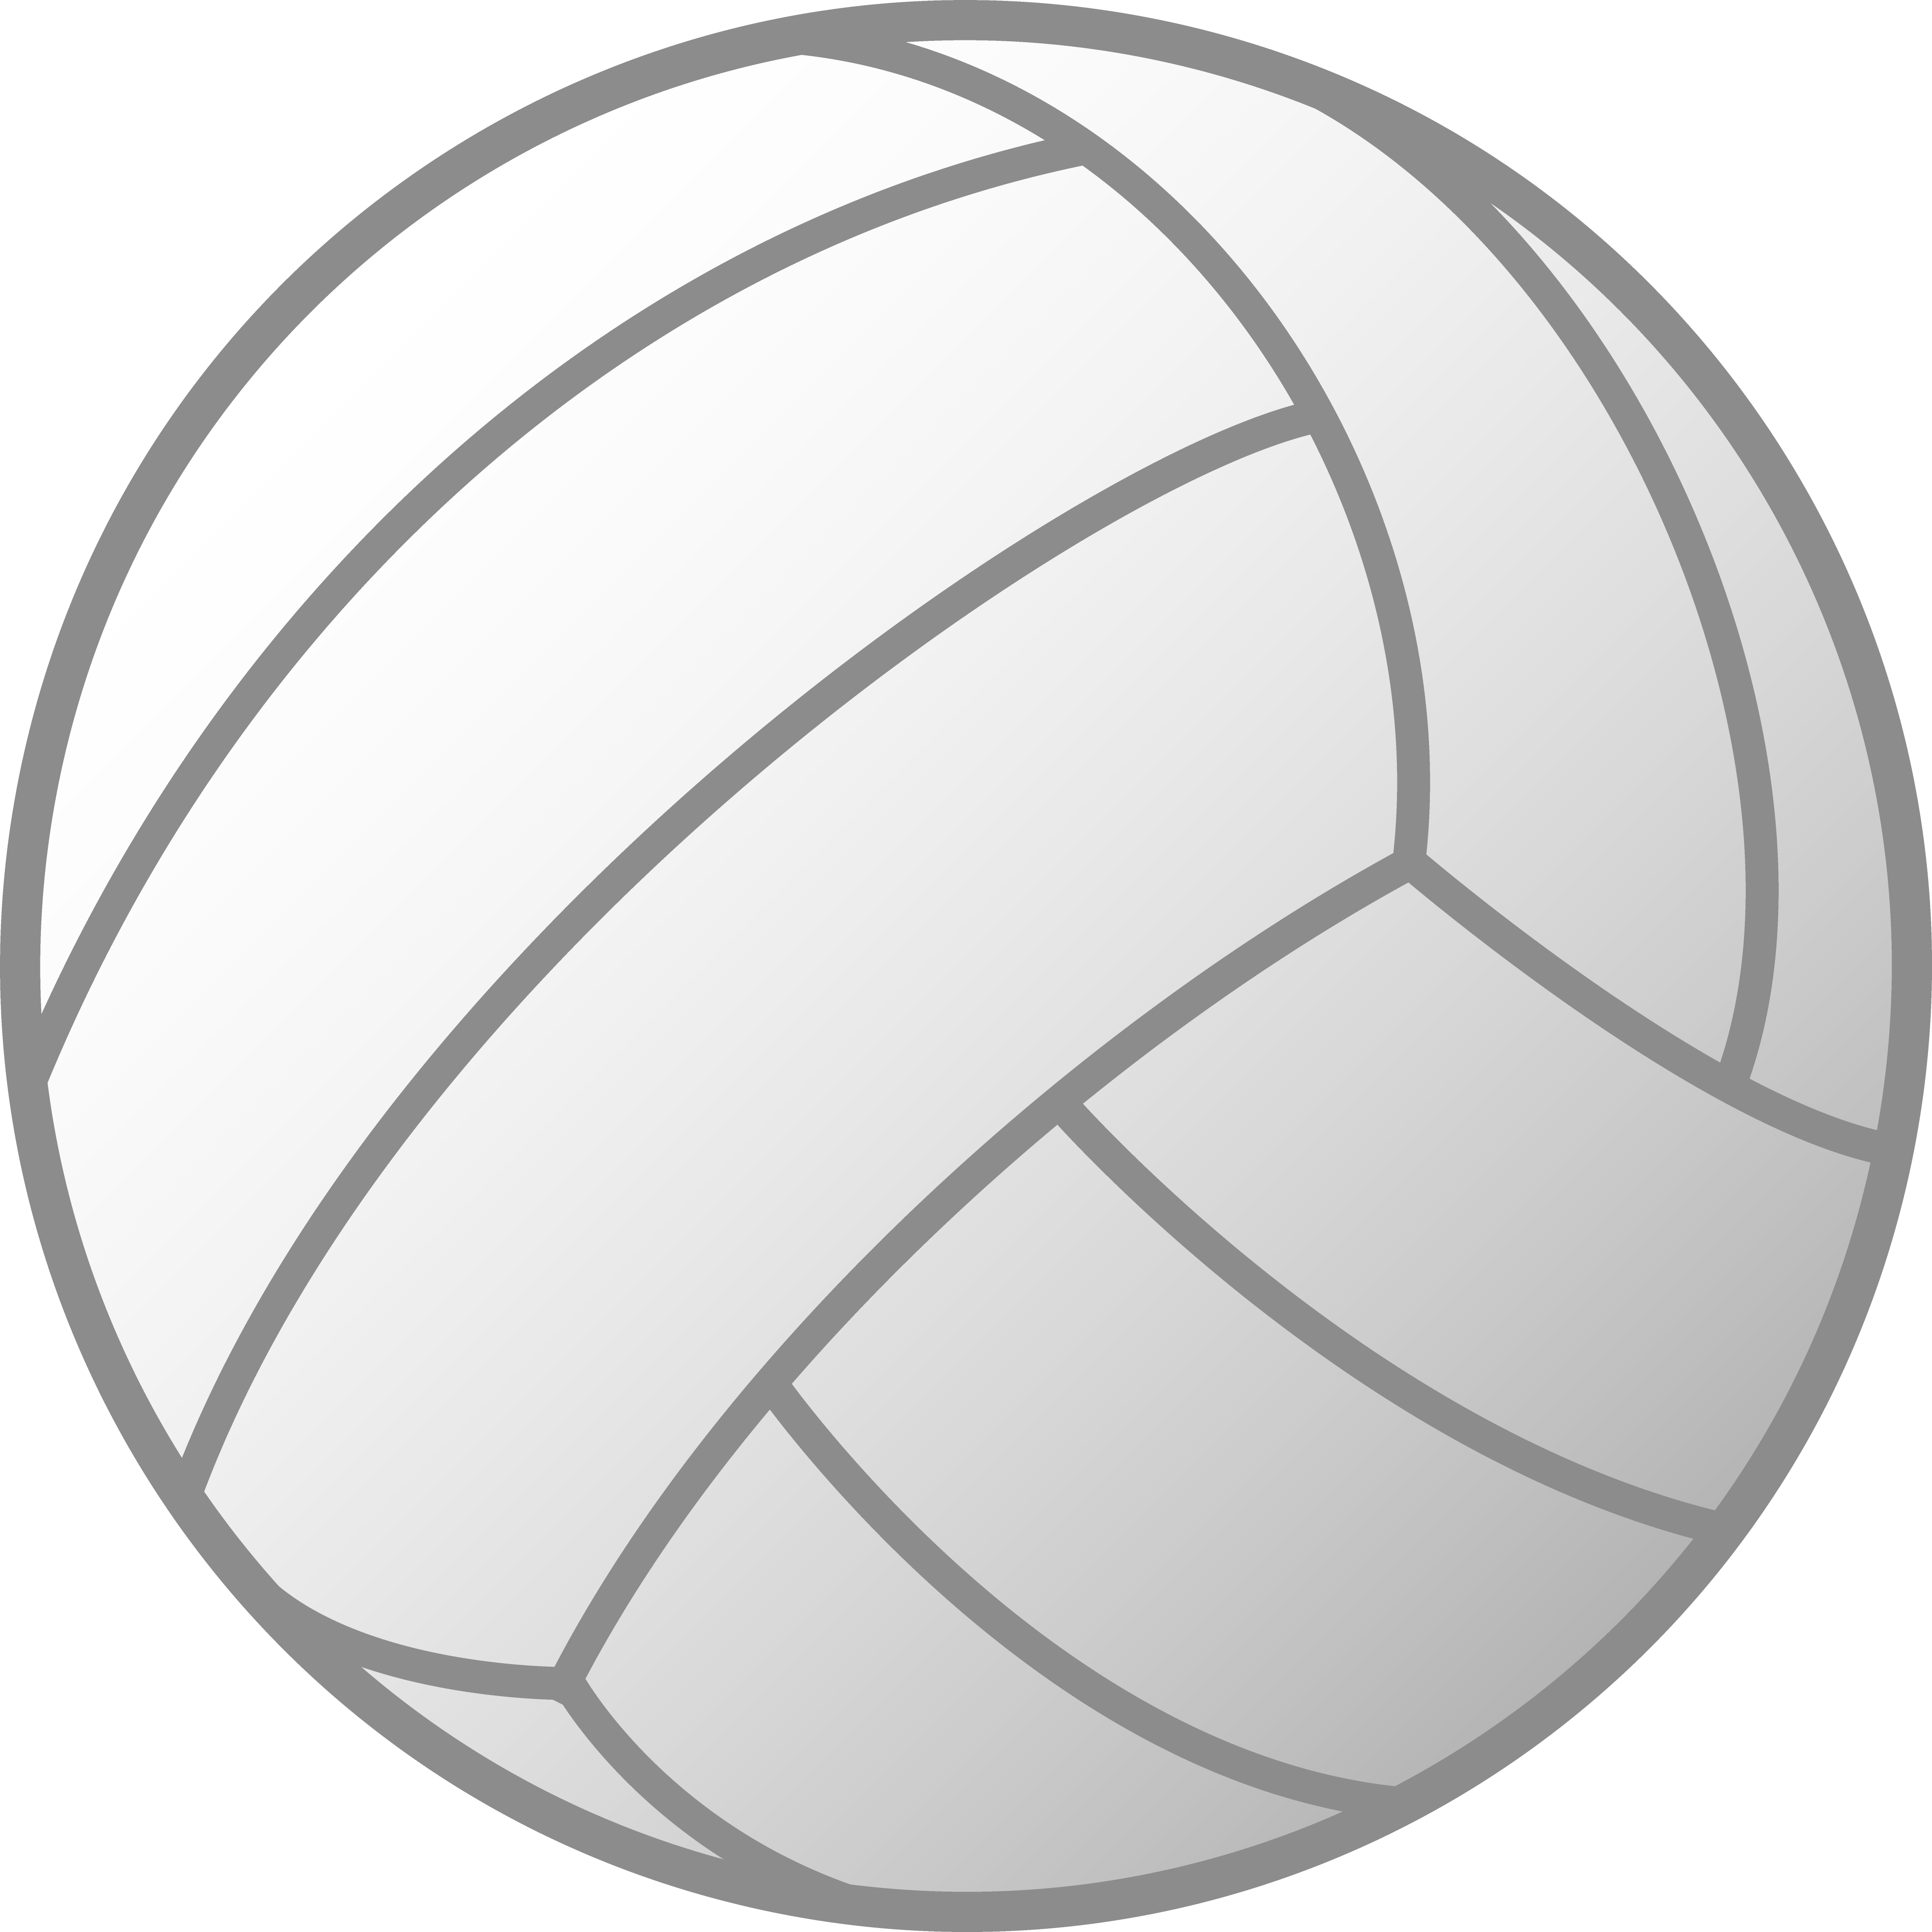 Clipart volleyball vintage. Simple white free clip